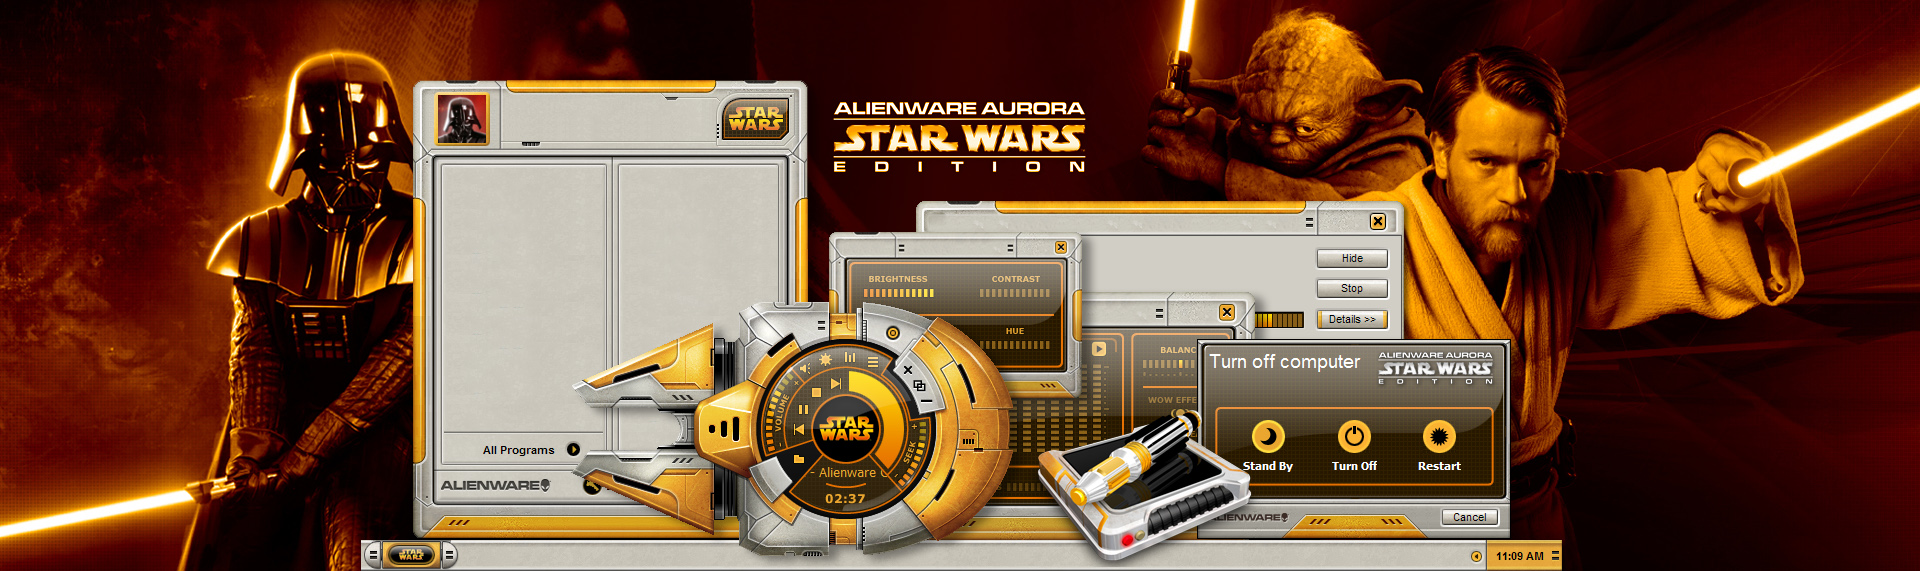 Alienware Aurora Star Wars Edition  Client: Alienware Corporation  The Skins Factory was contracted by Alienware Corporation to create an entire Windows desktop theme, based on the style of the Rebellion's ships. Available only when you purchased the Alienware Aurora Star Wars Edition computers. The suite Included a custom Windows Media Player skin, set of 35 Star Wars inspired icons, custom desktop and wallpapers designed around custom images created by Alienware's in-house design team.